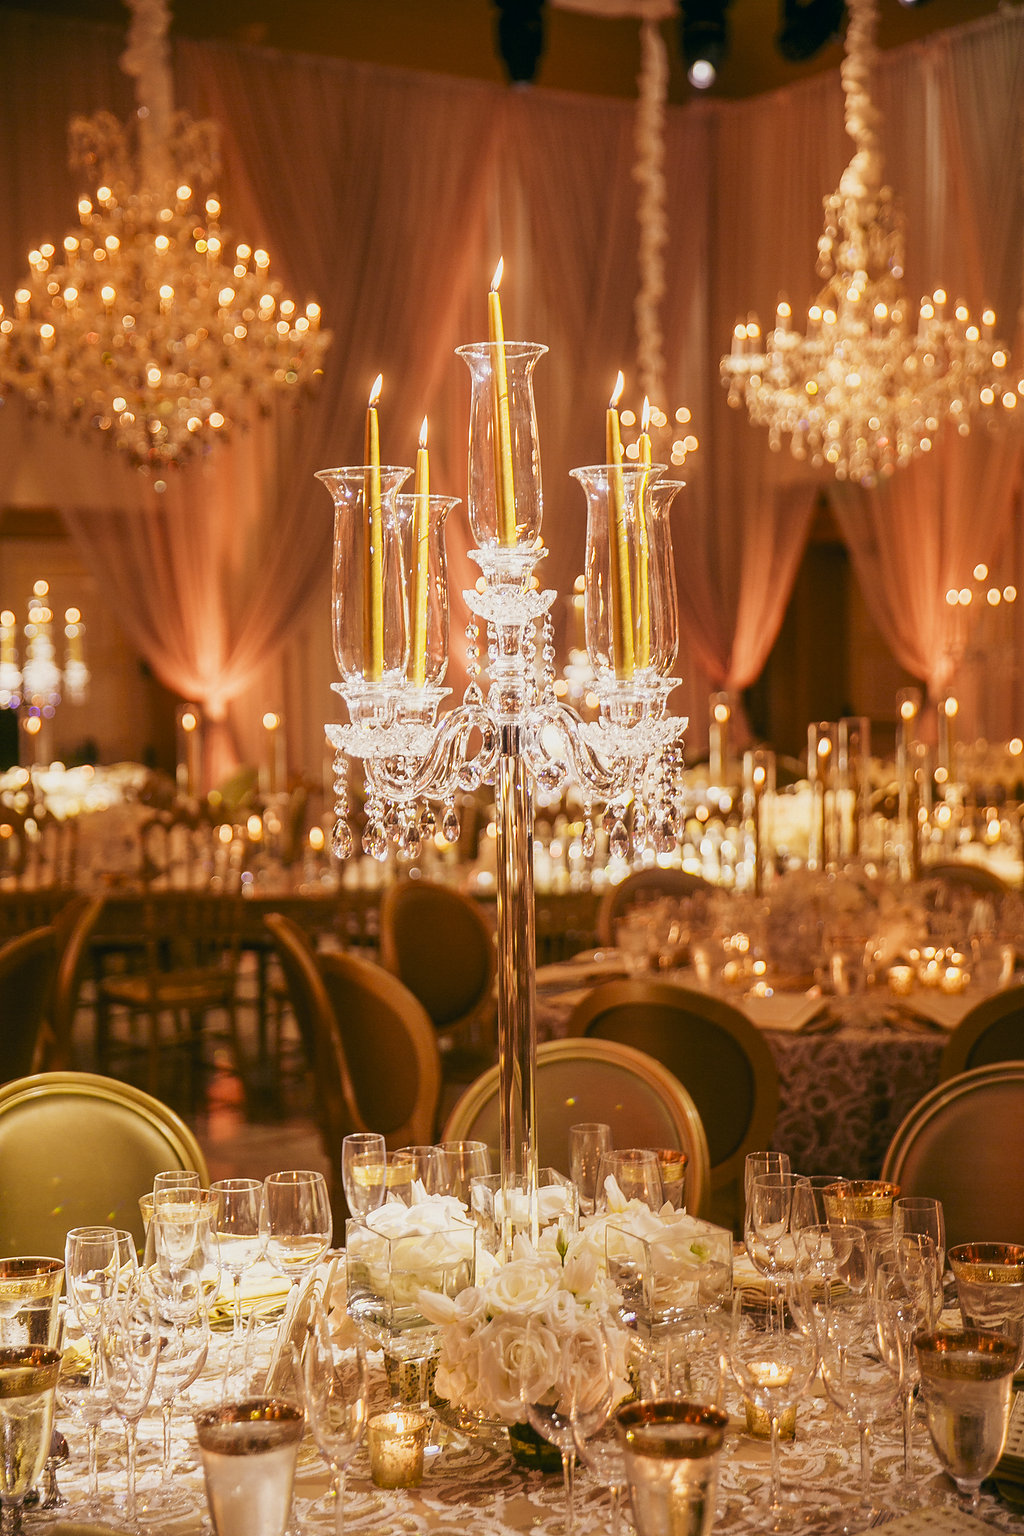 close up of candelabra on table with white flowers and candle light